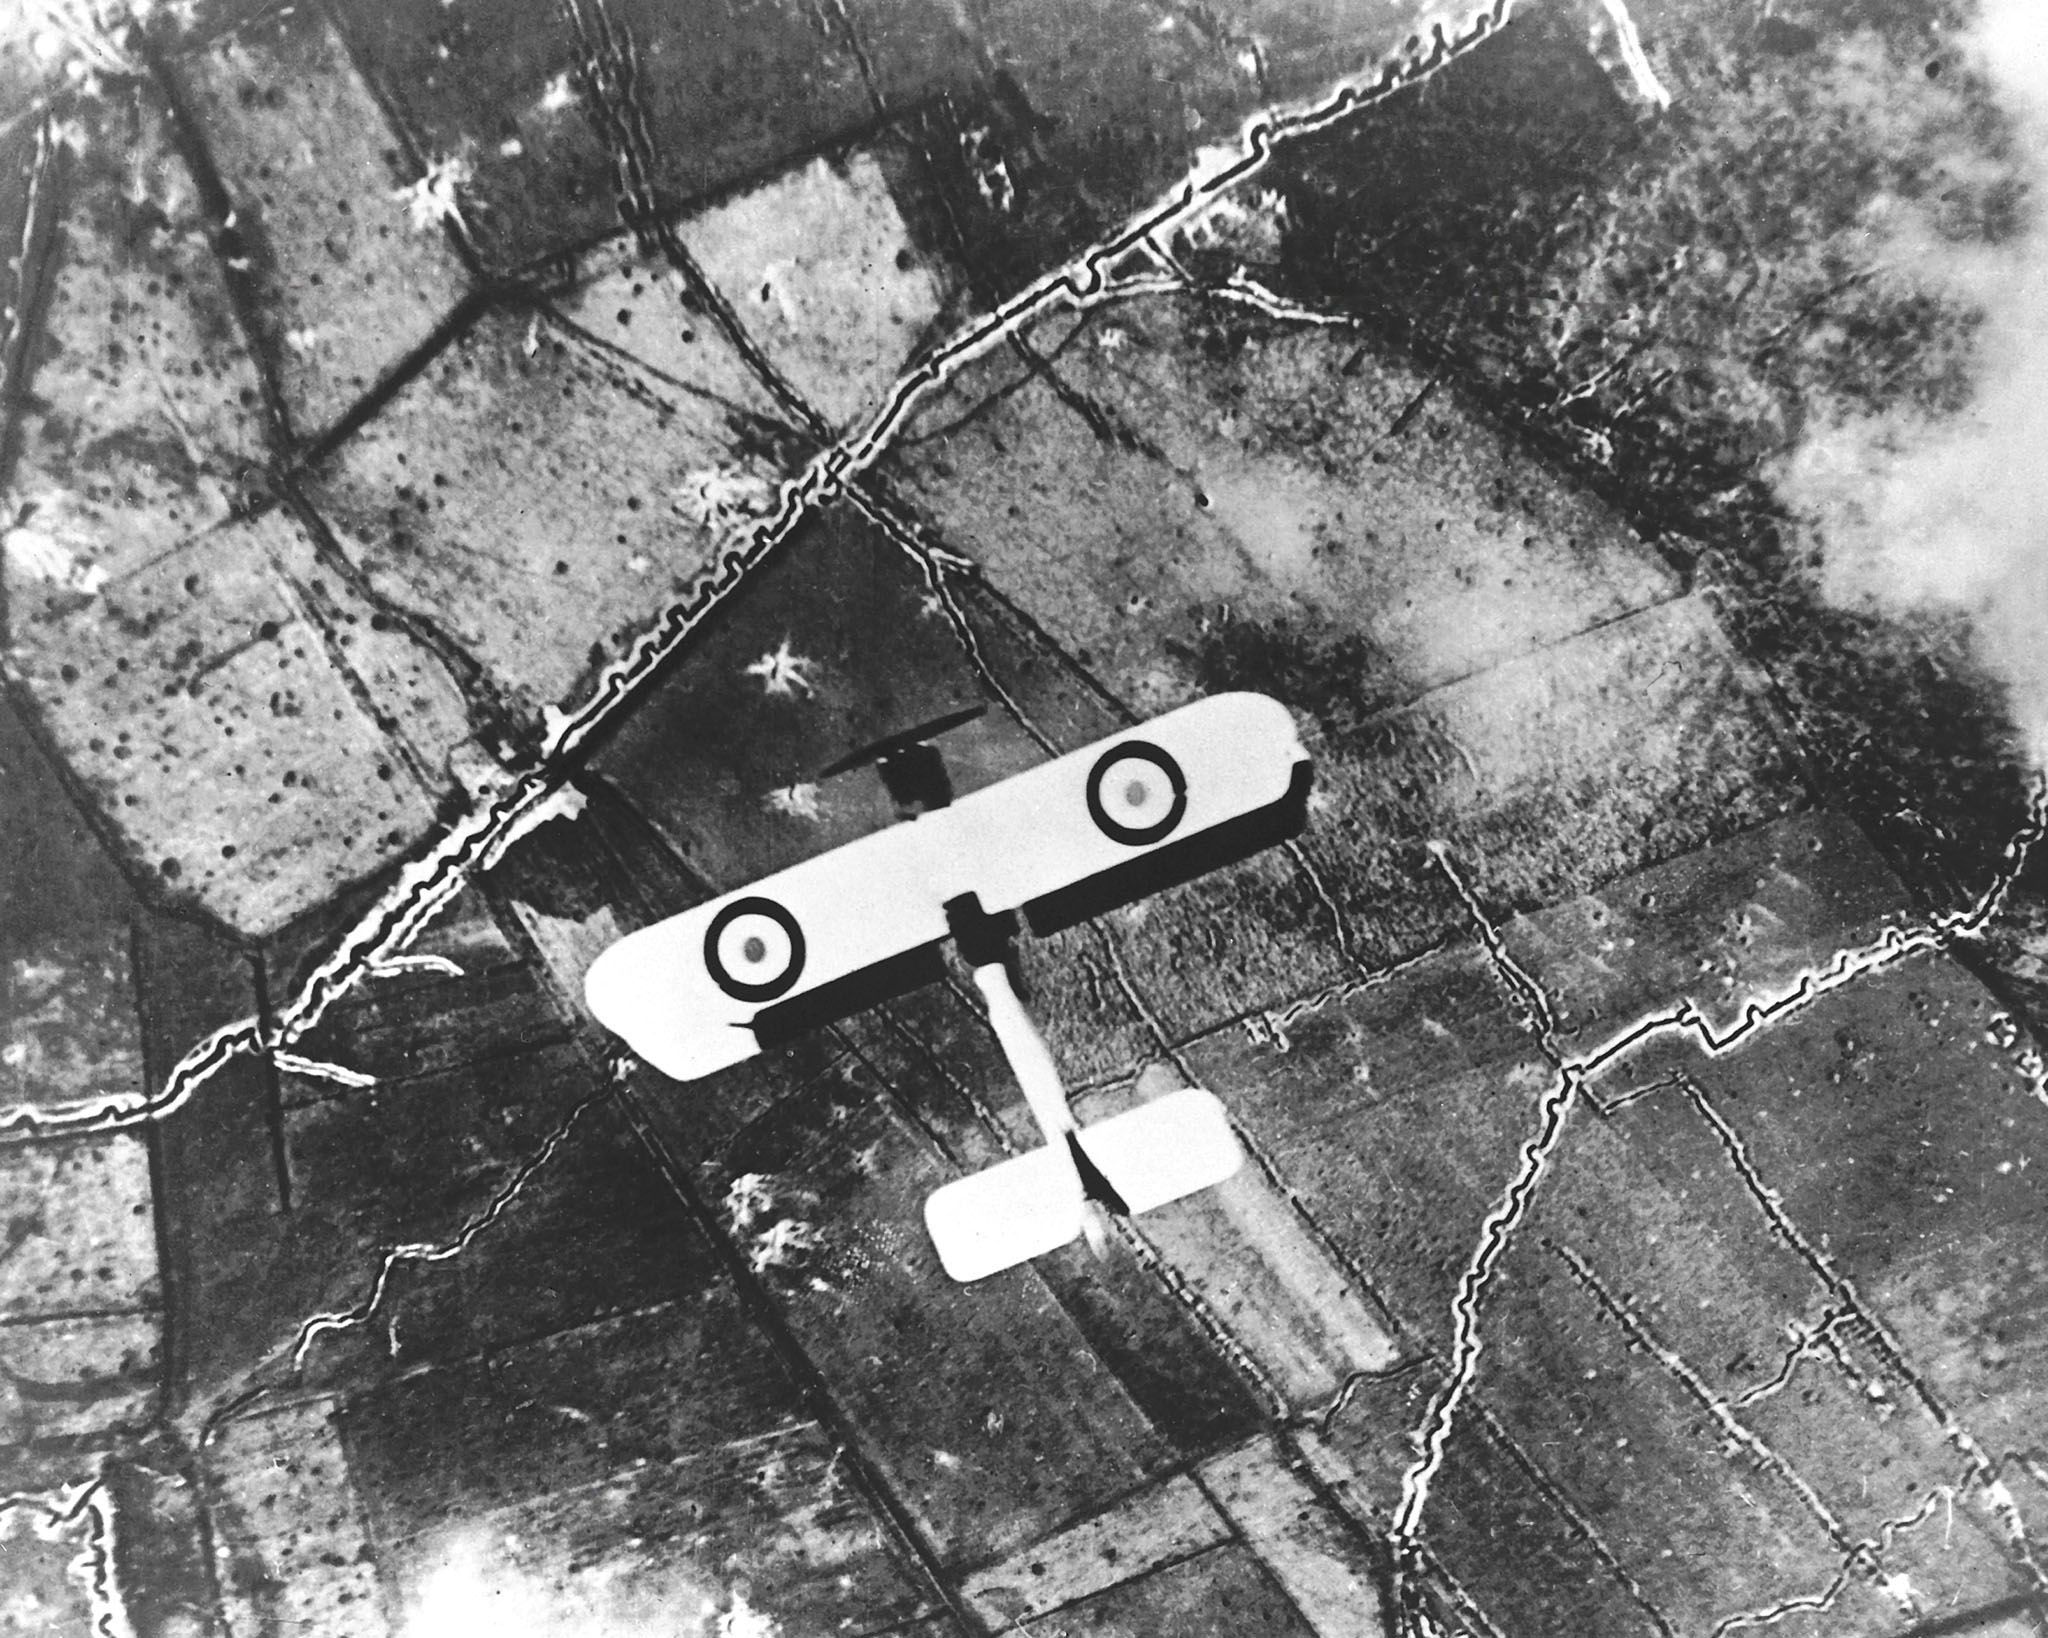 In this undated photo, a British B.E. 2 flies low over the trenches in France. PHOTO: DND Archives, PMR74-661